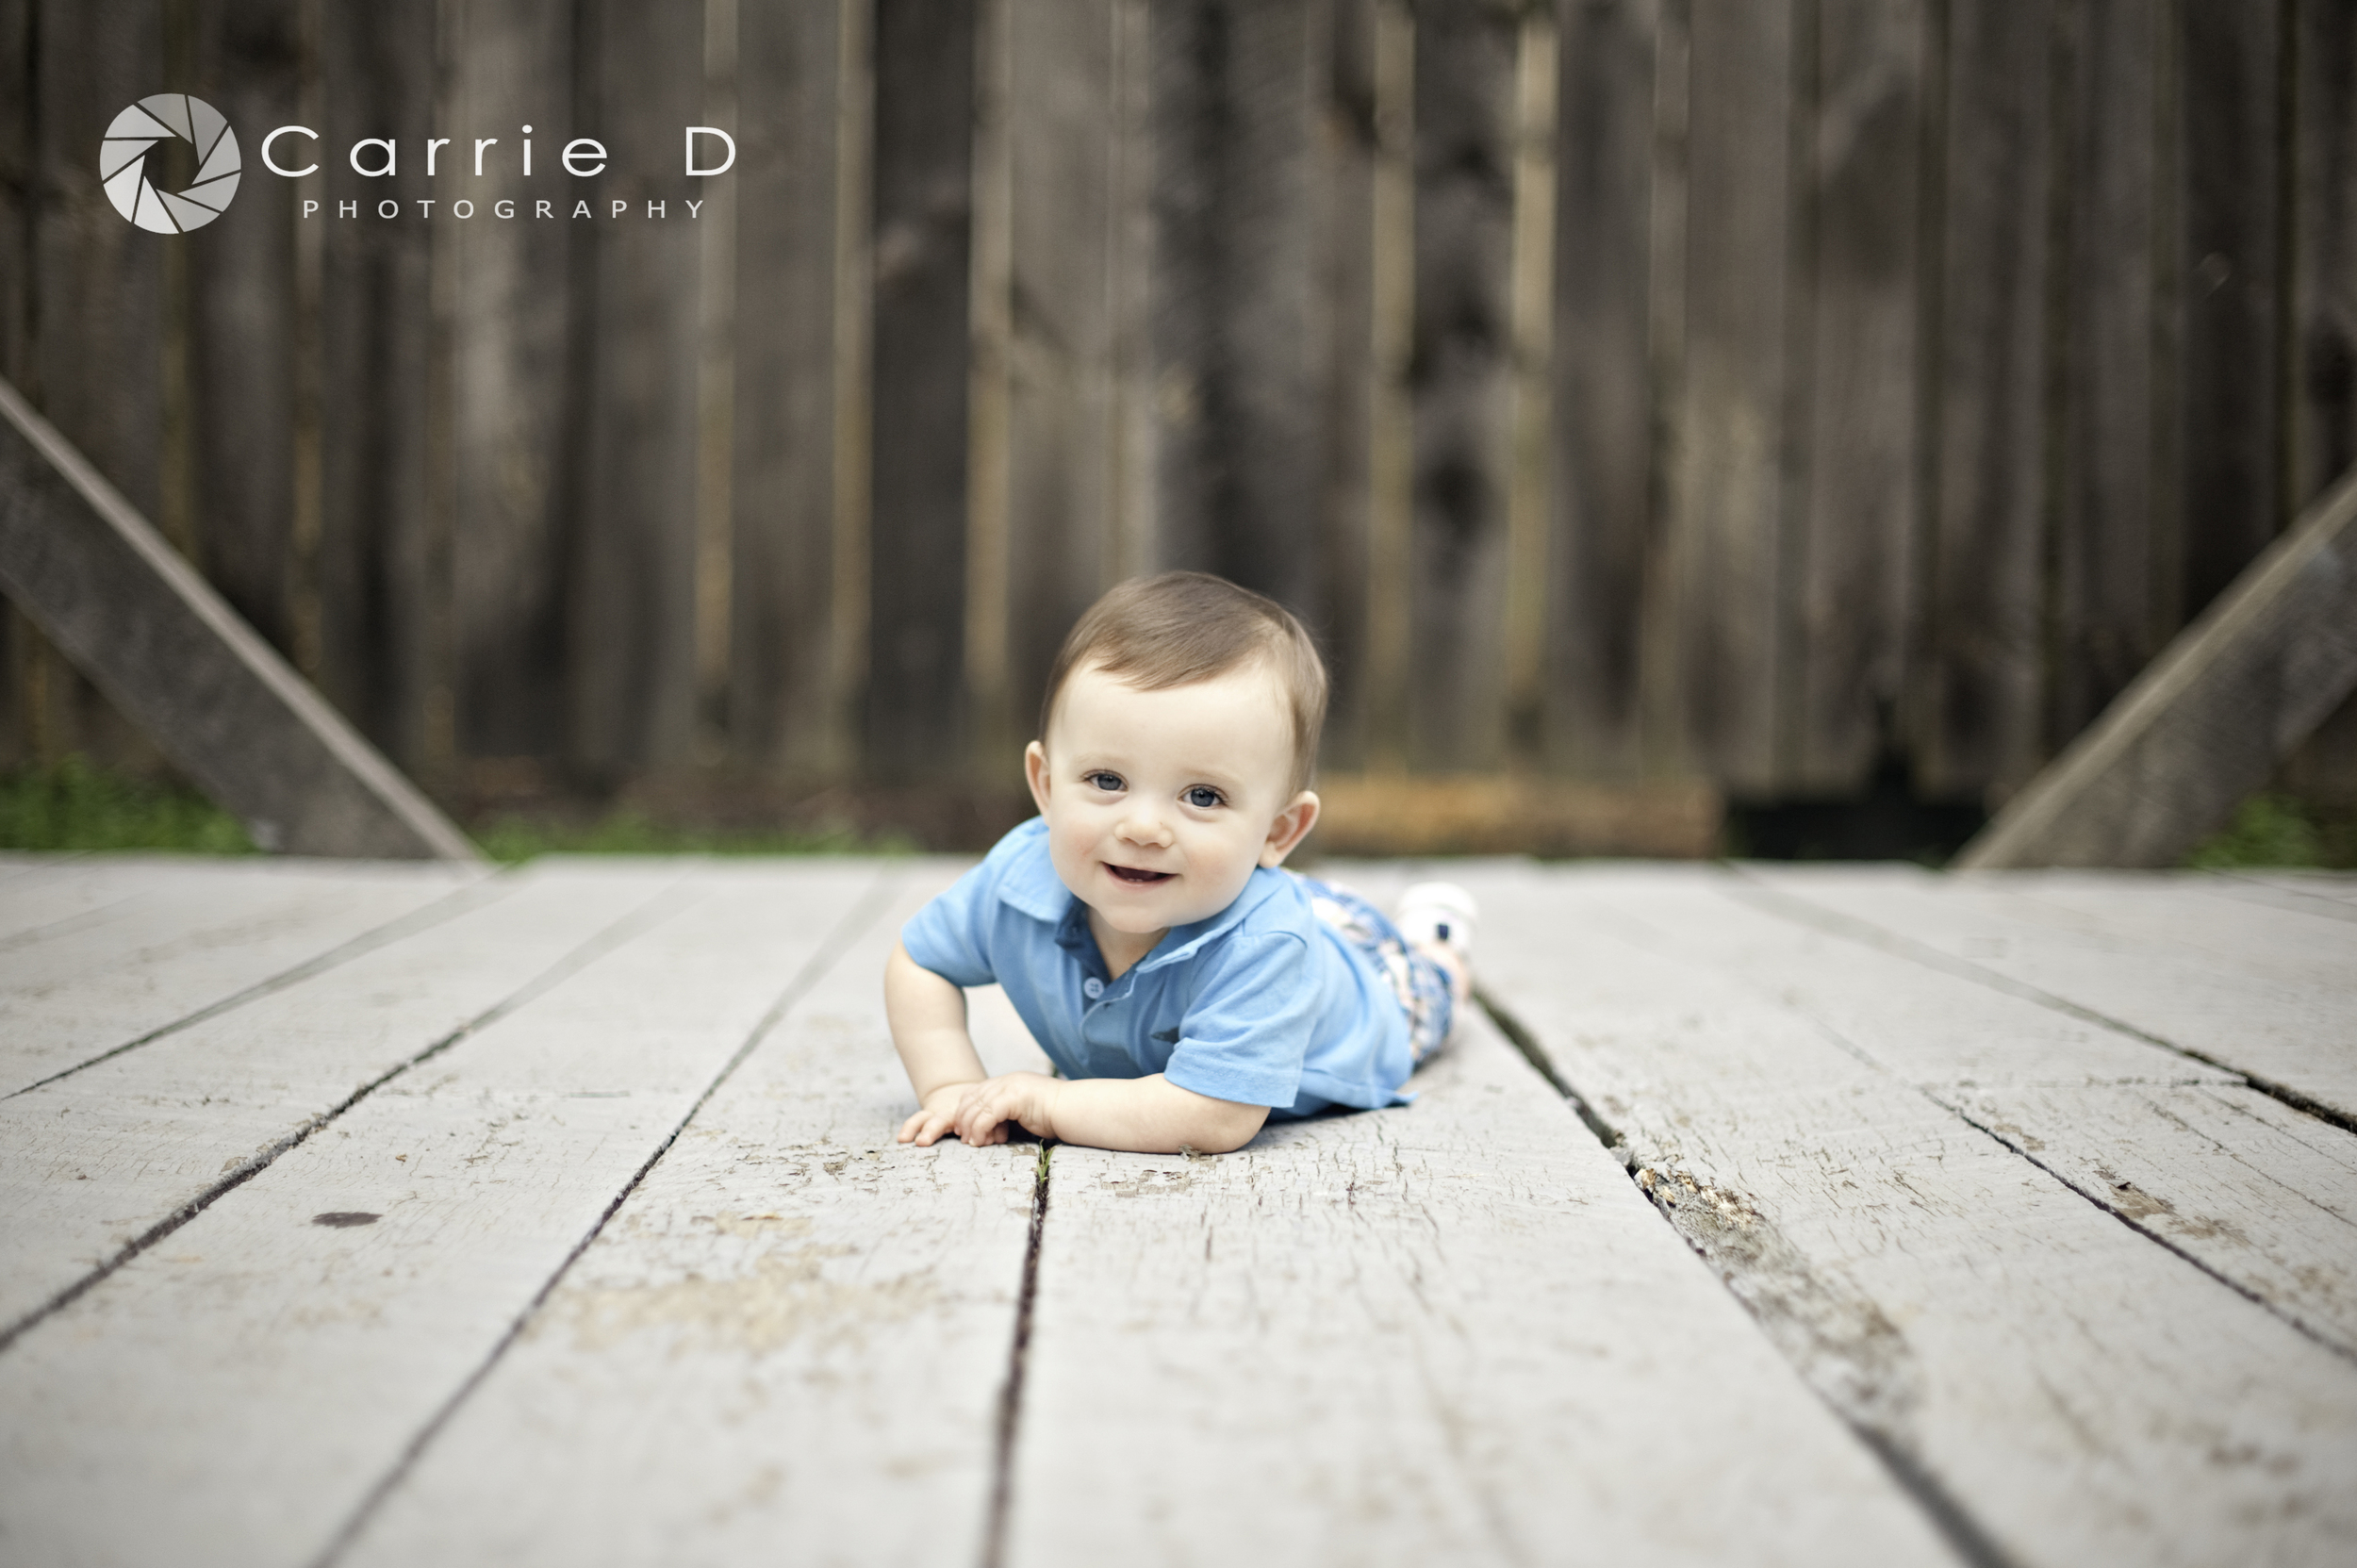 Baltimore Photographer – Baltimore Portrait Photographer – Baltimore Family Photographer – Baltimore Child Photographer – Baltimore Sibling Photographer – Baltimore Natural Light Photographer – Baltimore Lifestyle Photographer – Baltimore Natural Light Portrait Photographer - Maryland Photographer – Maryland Portrait Photographer – Maryland Family Photographer – Maryland Child Photographer – Maryland Sibling Photographer – Maryland Natural Light Photographer – Maryland Lifestyle Photographer – Maryland Natural Light Portrait Photographer